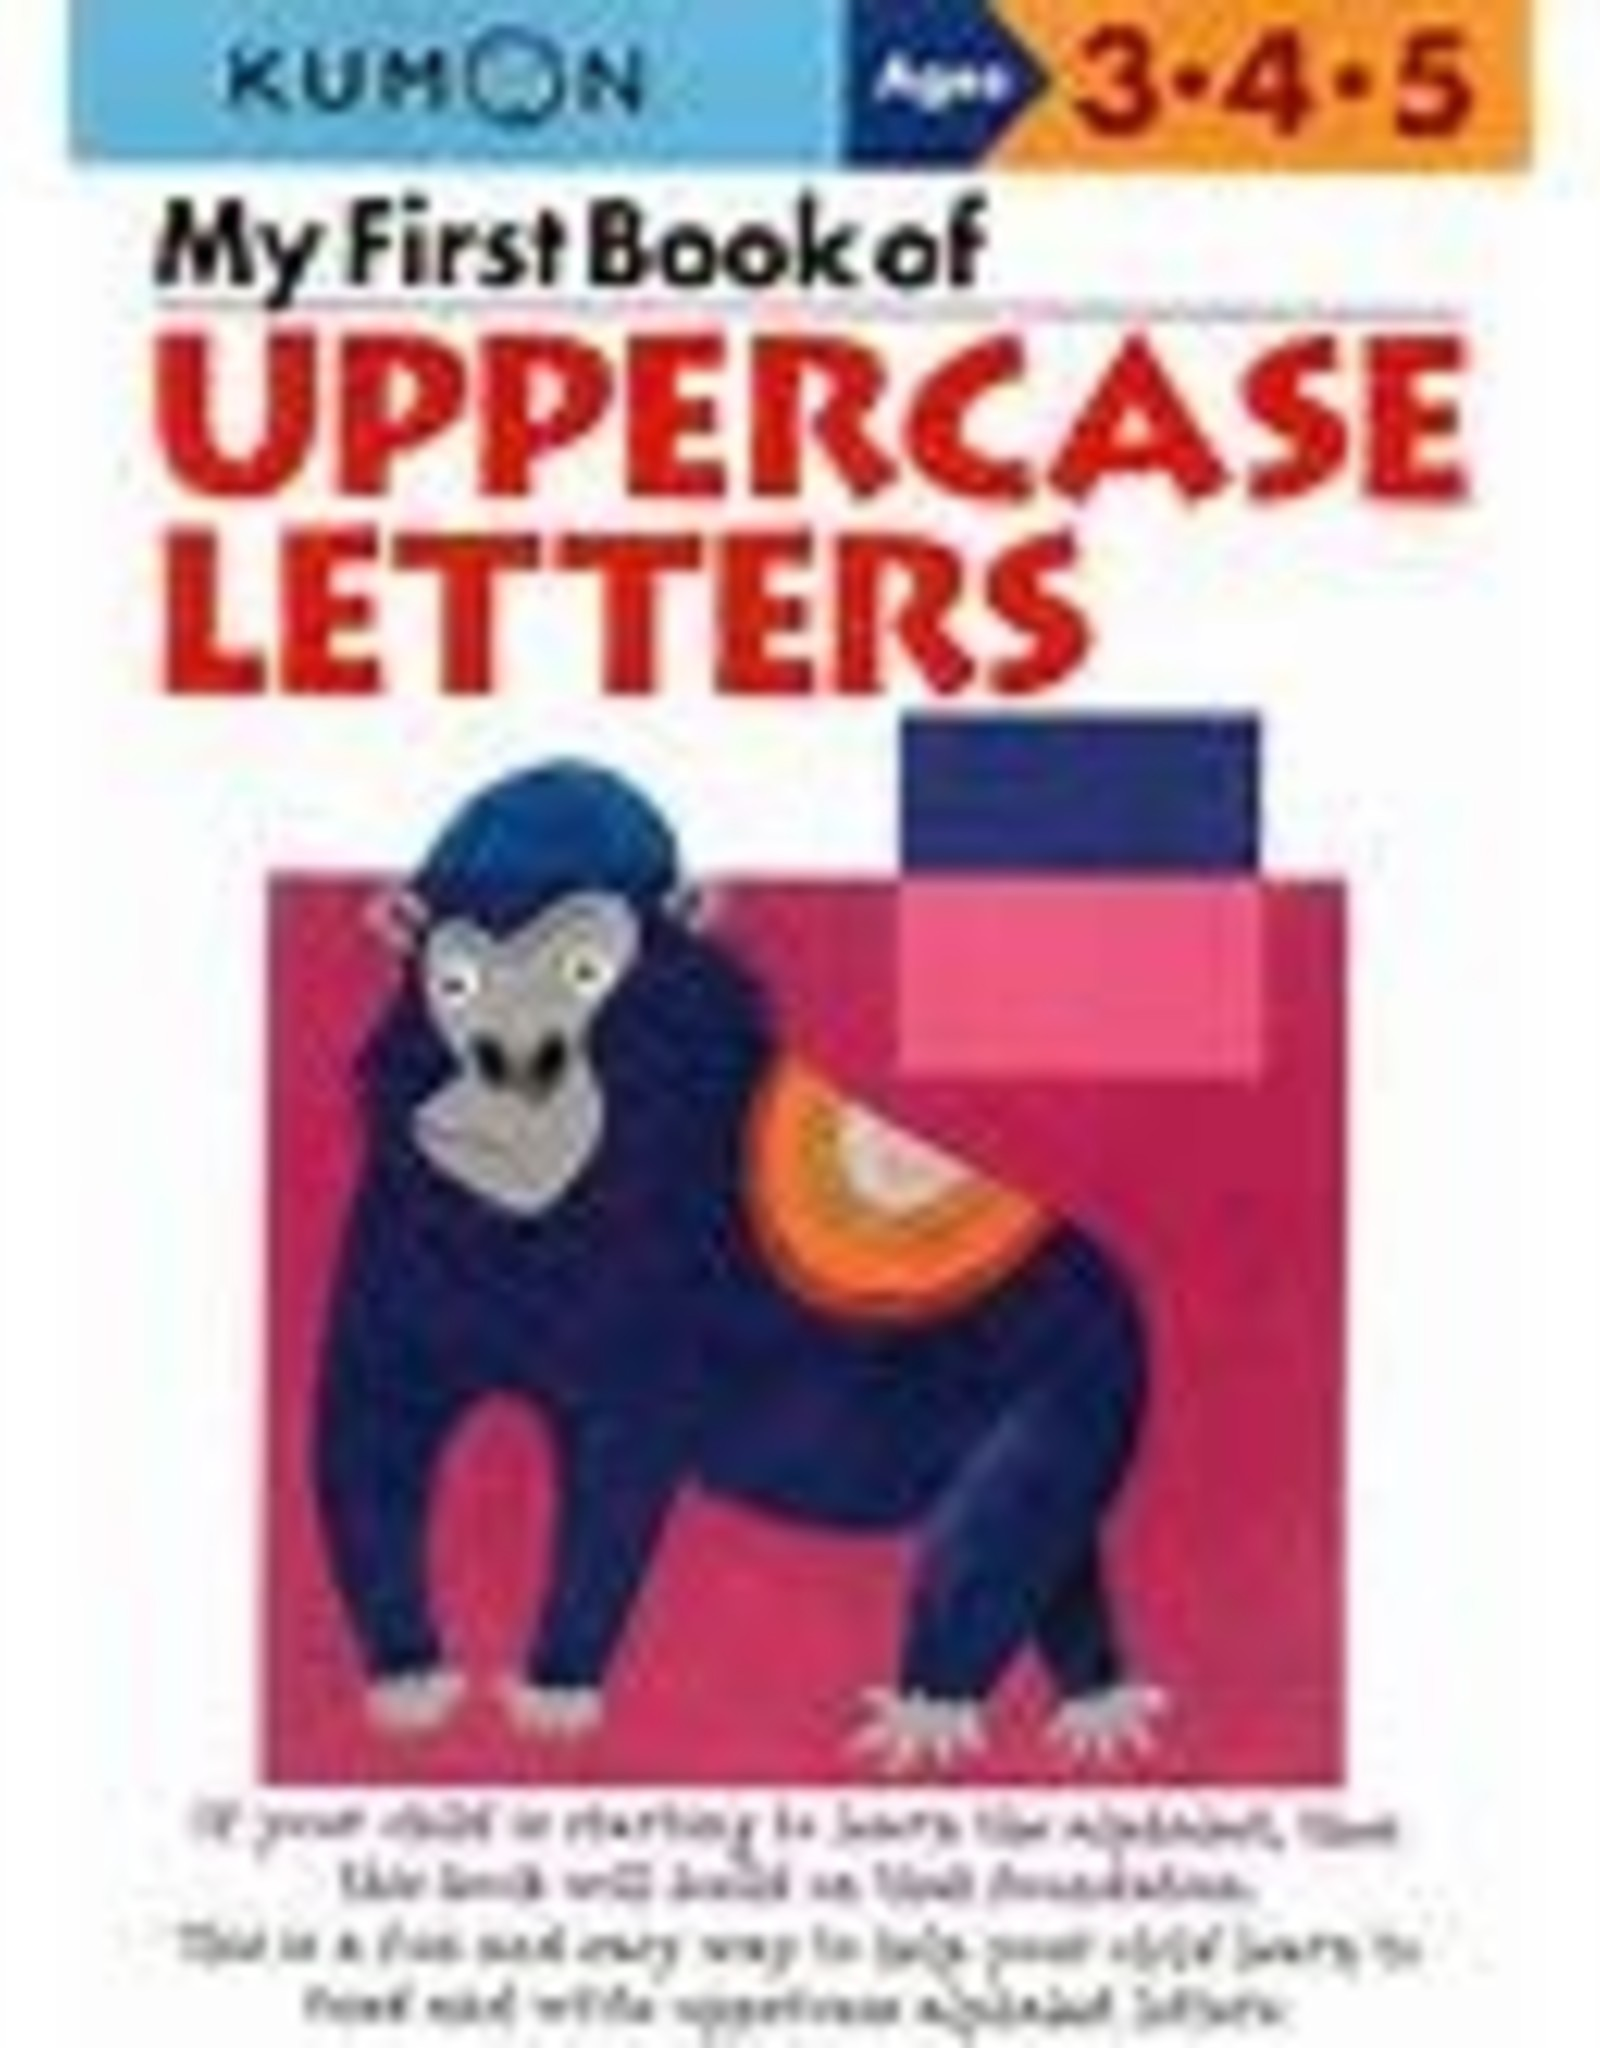 Kumon My First Book of Uppercase Letters